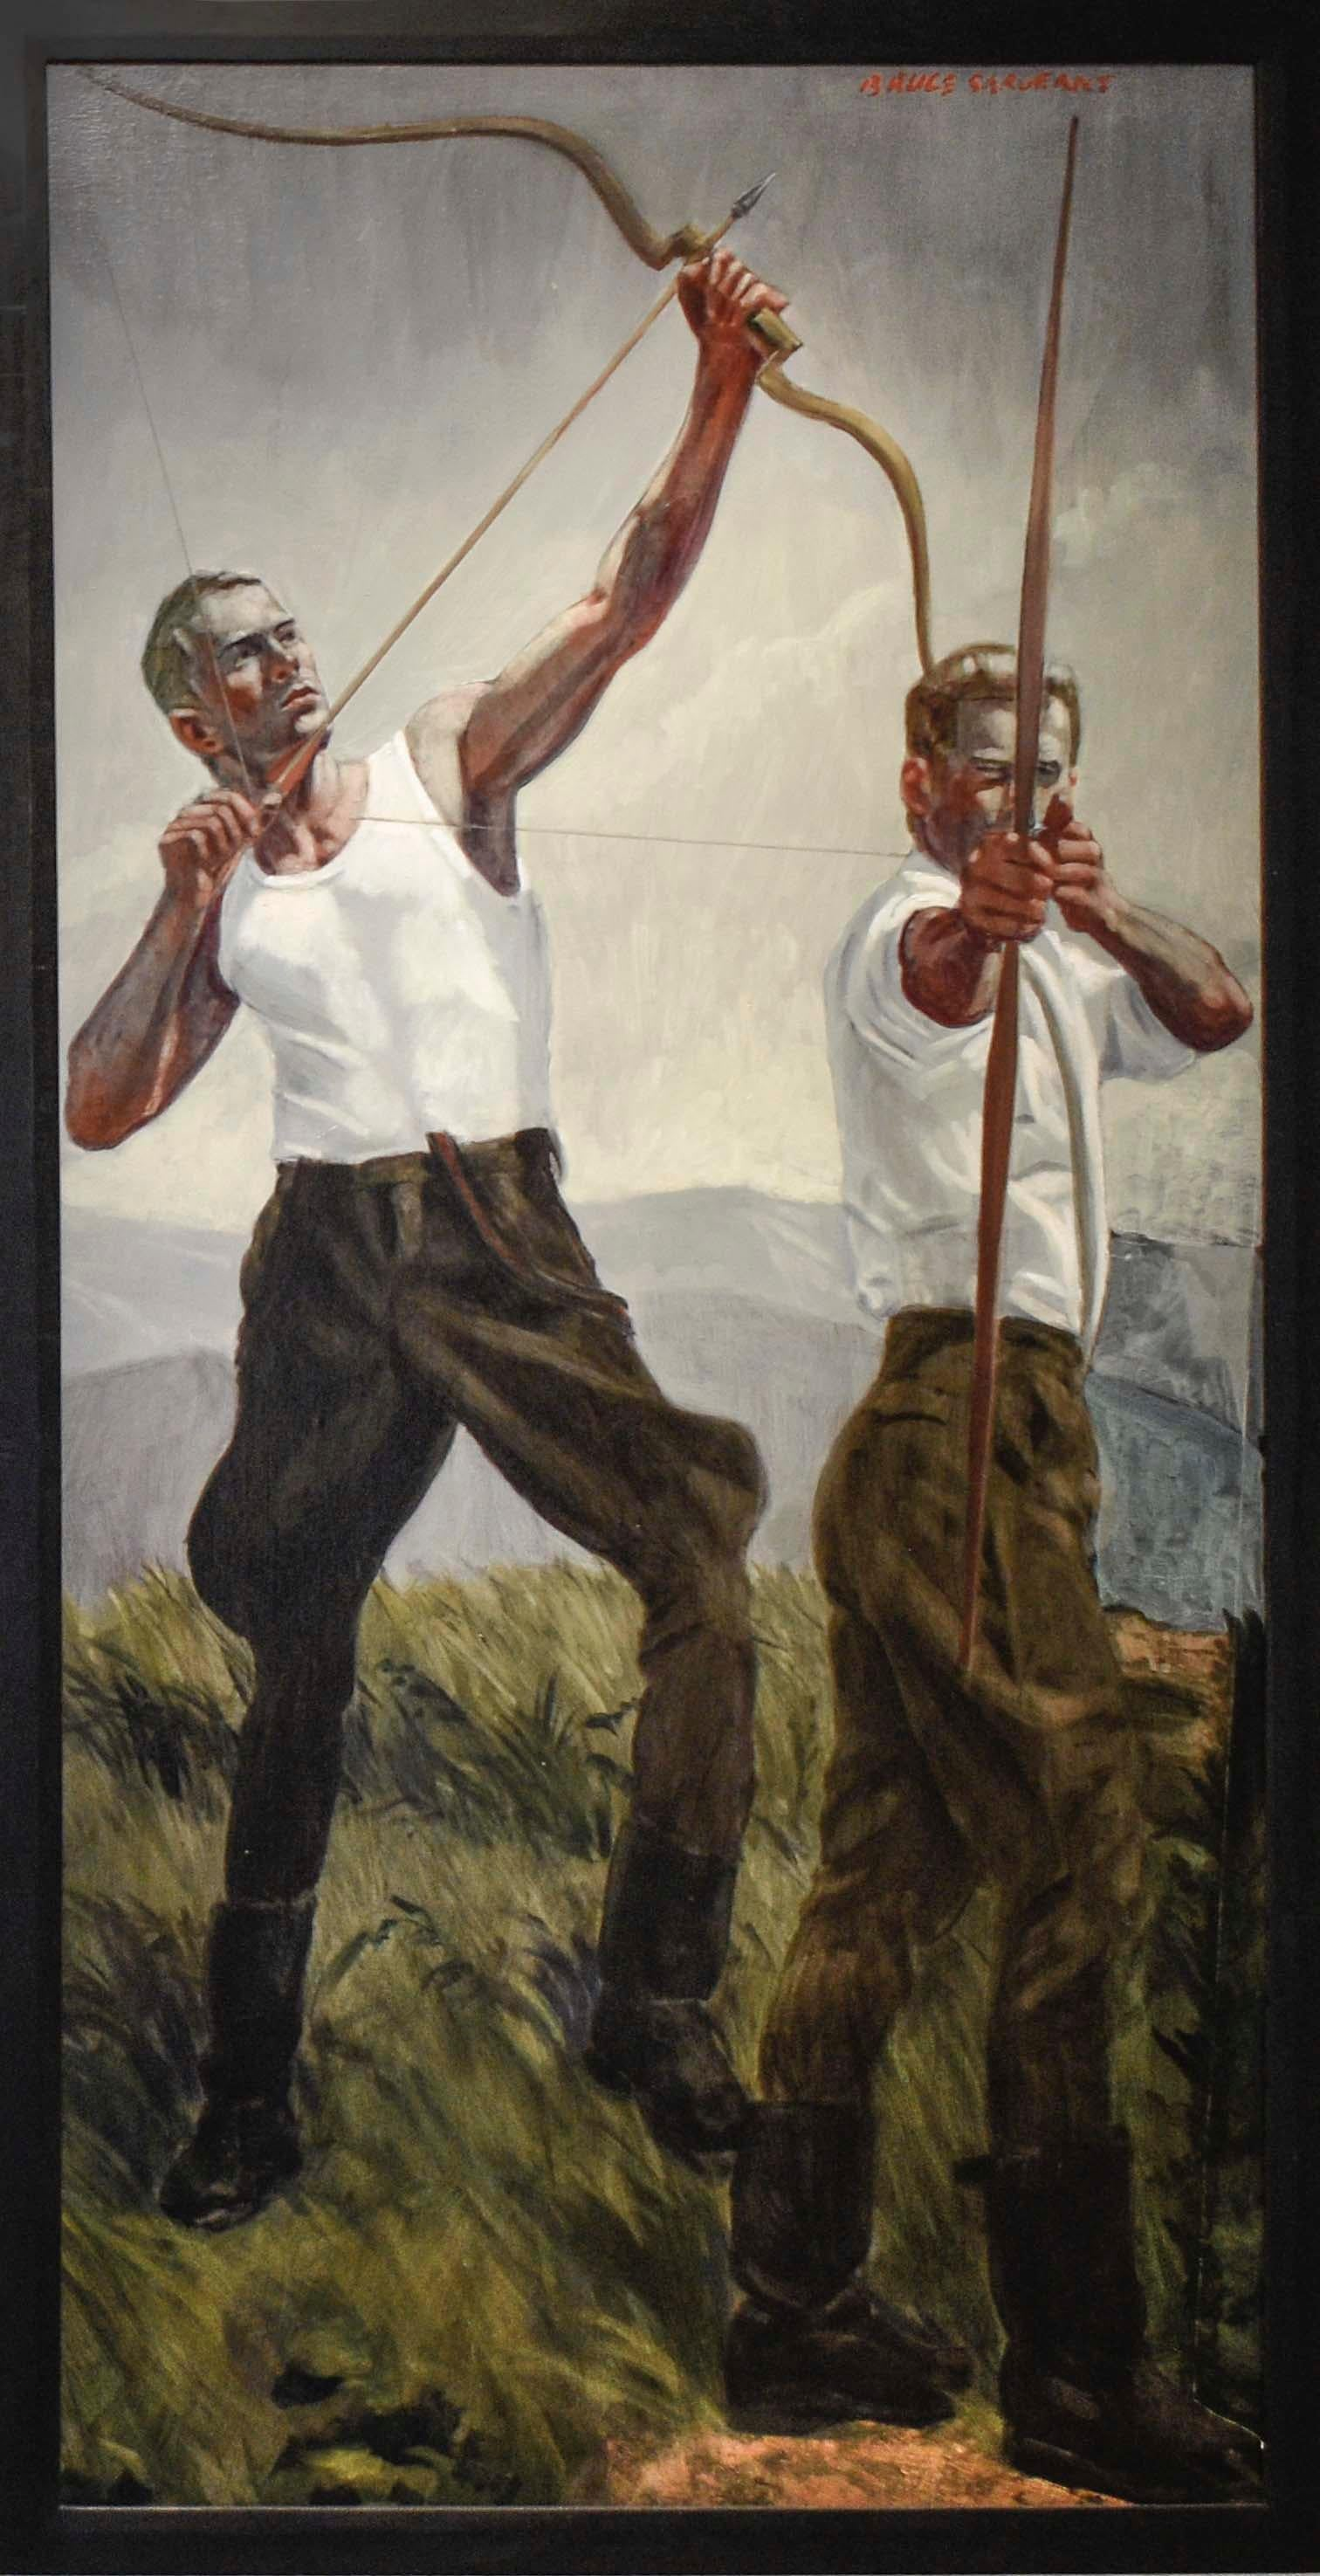 Archers: Figurative Painting of Two Sporting Men by Mark Beard, Bruce Sargeant